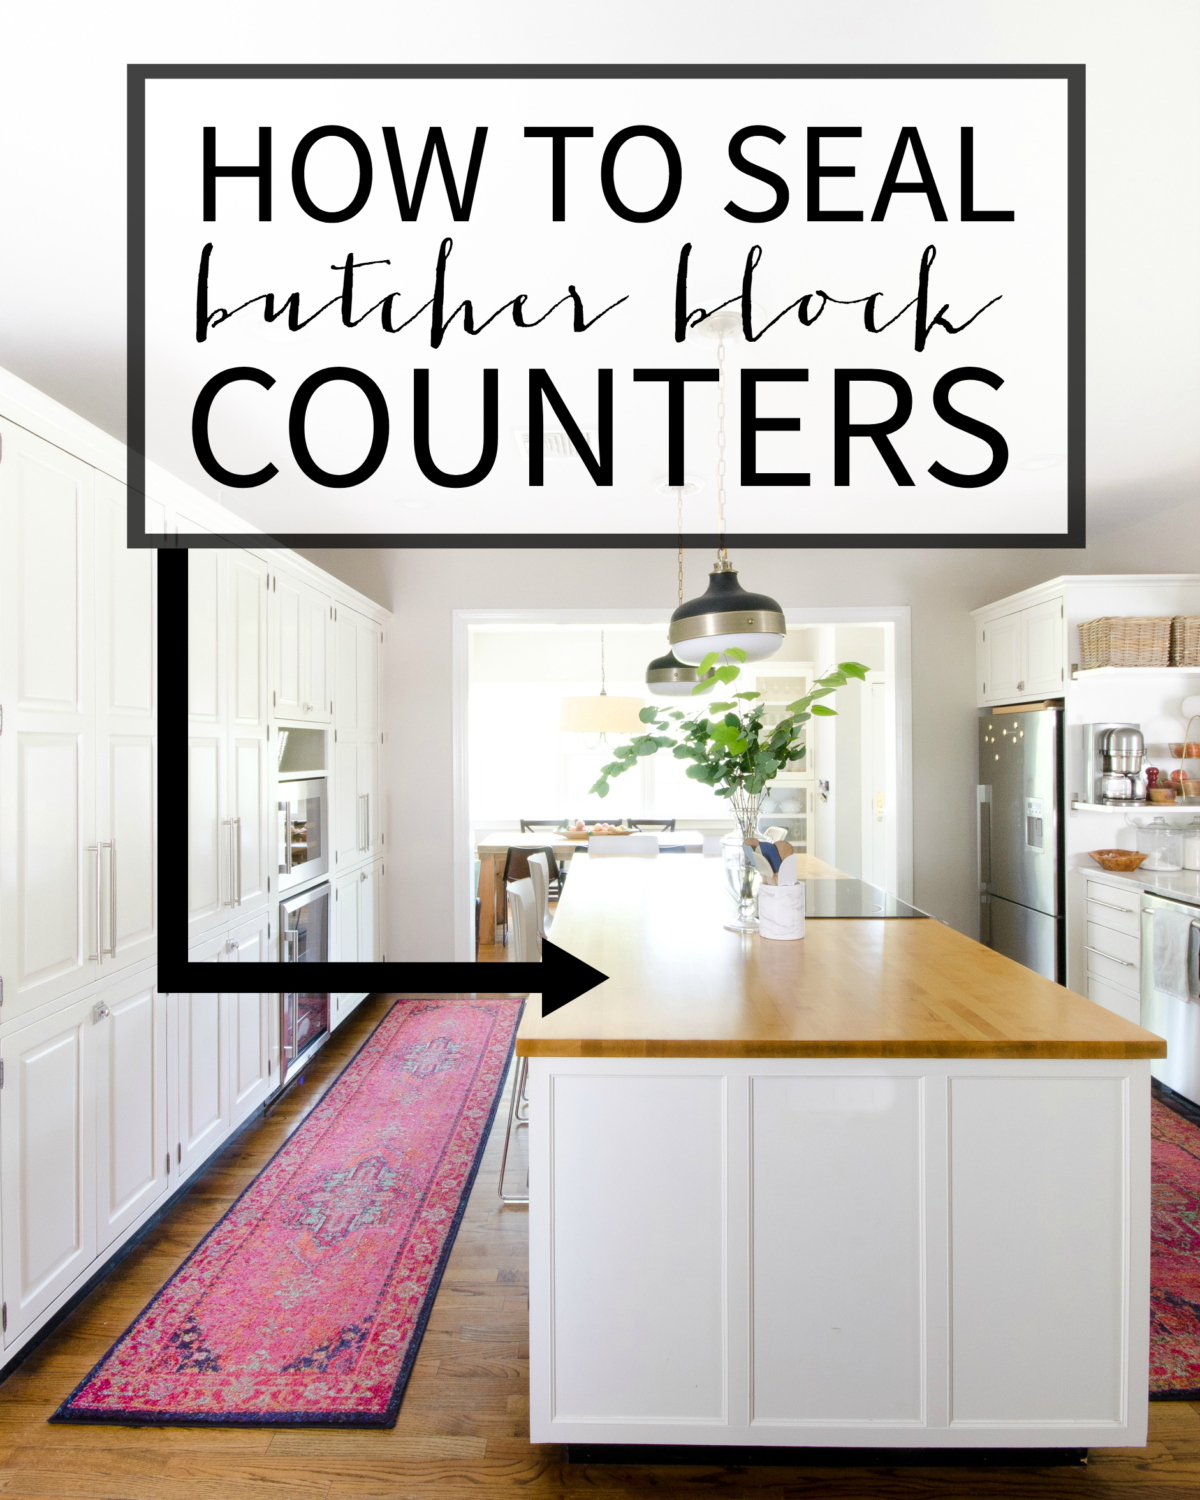 How to seal butcher block counters - step-by-step directions from someone who has lived with them for four years and has refinished them twice!